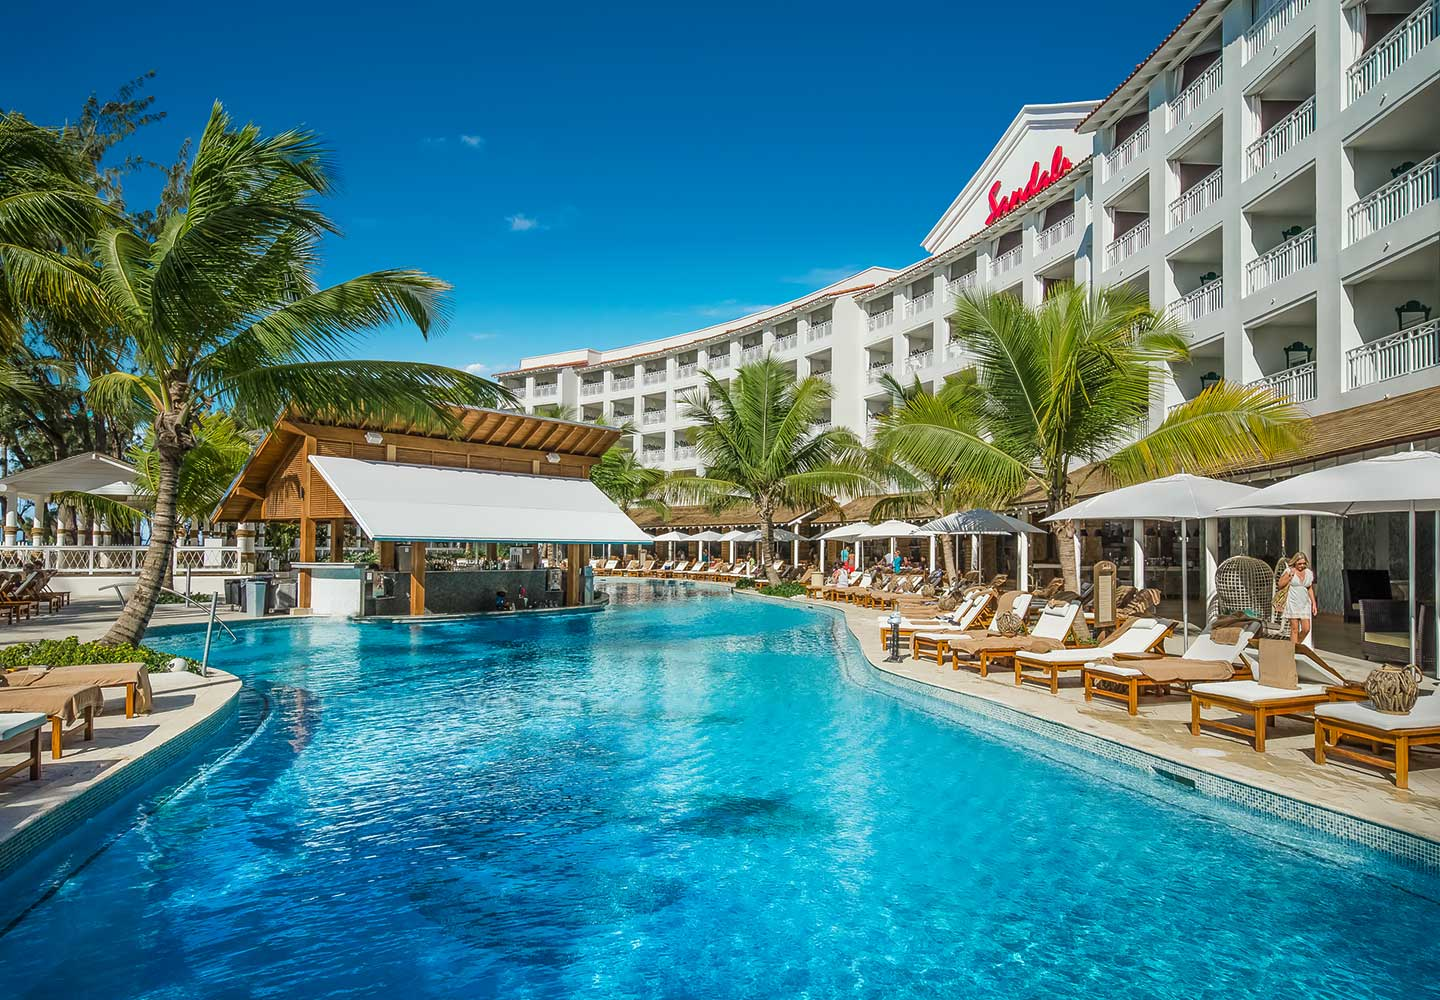 Sandals All Inclusive Luxury Vacations offers the very best of all-inclusive vacation experience in the Caribbean. Sandals is the premier adult all inclusive resort vacation in Jamaica, St. Lucia, Antigua, Barbados and the Bahamas.